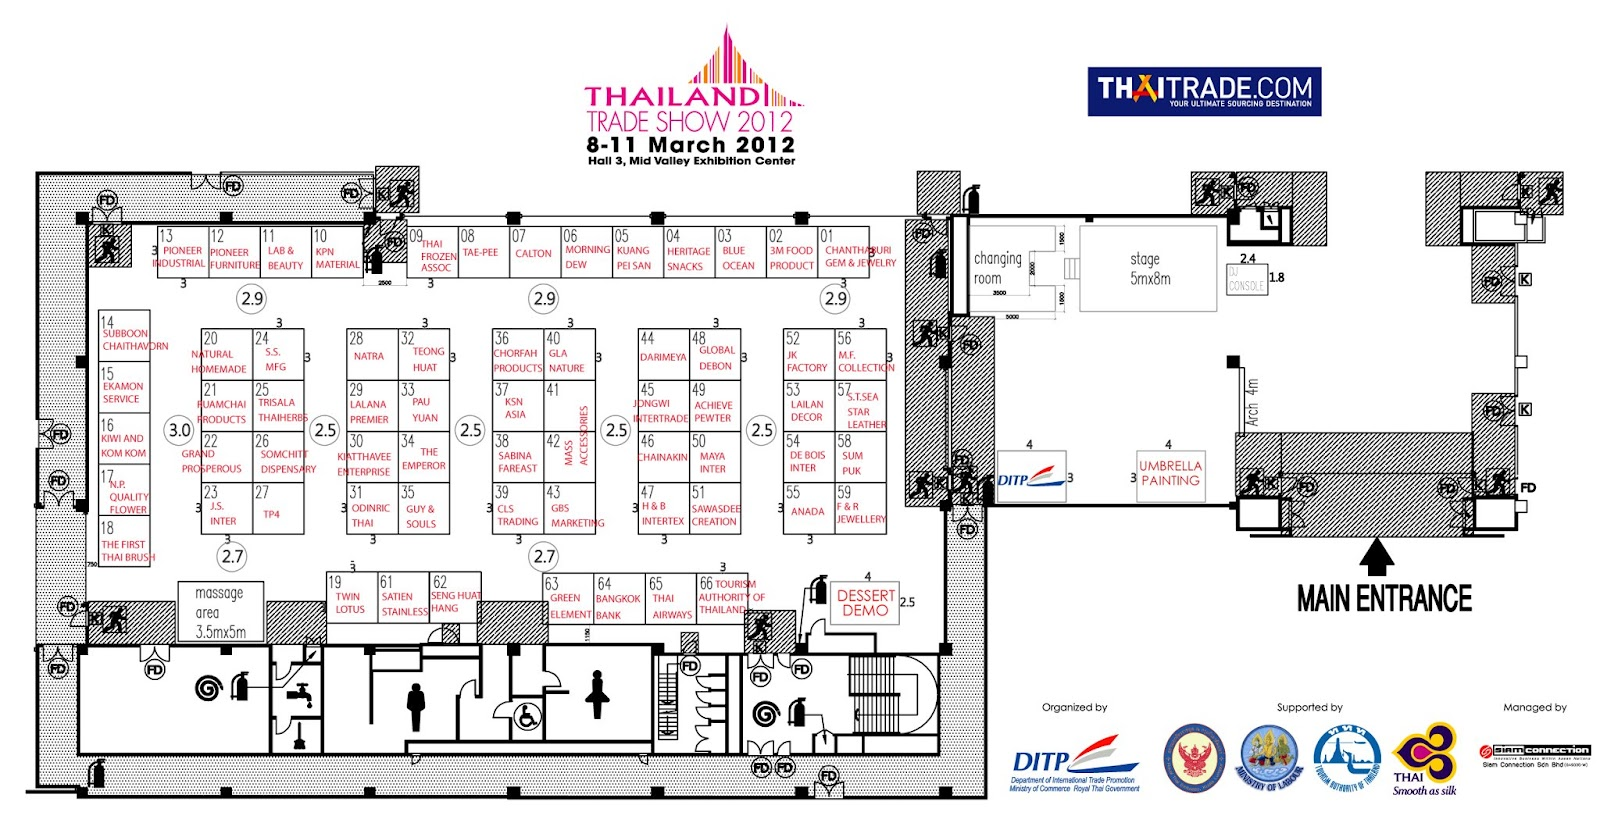 Thailand trade show 2012 8 11 march 2012 events nonstop for Trade show floor plan